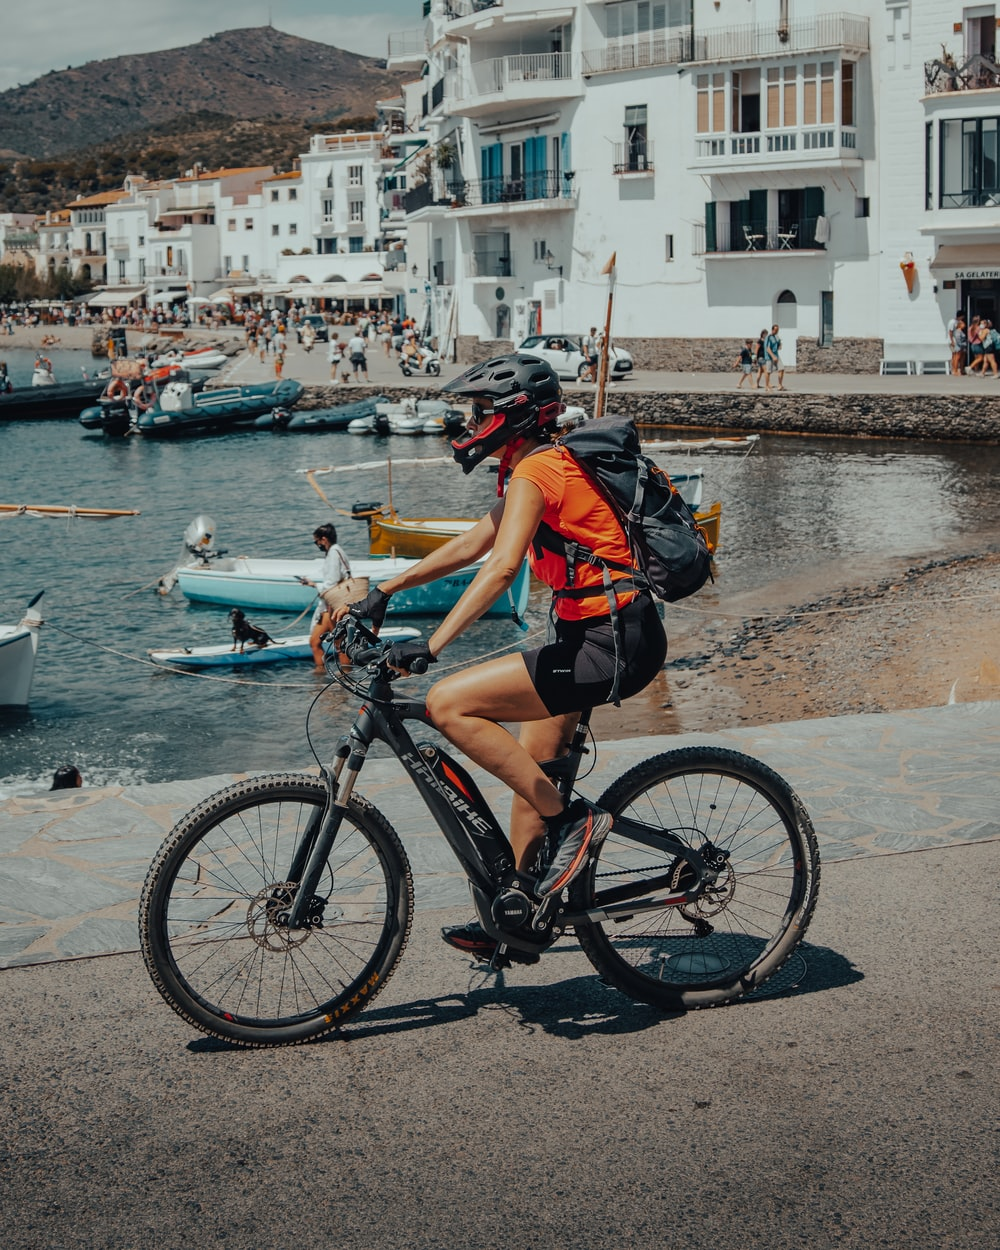 woman in black and orange shirt riding on bicycle near body of water during daytime